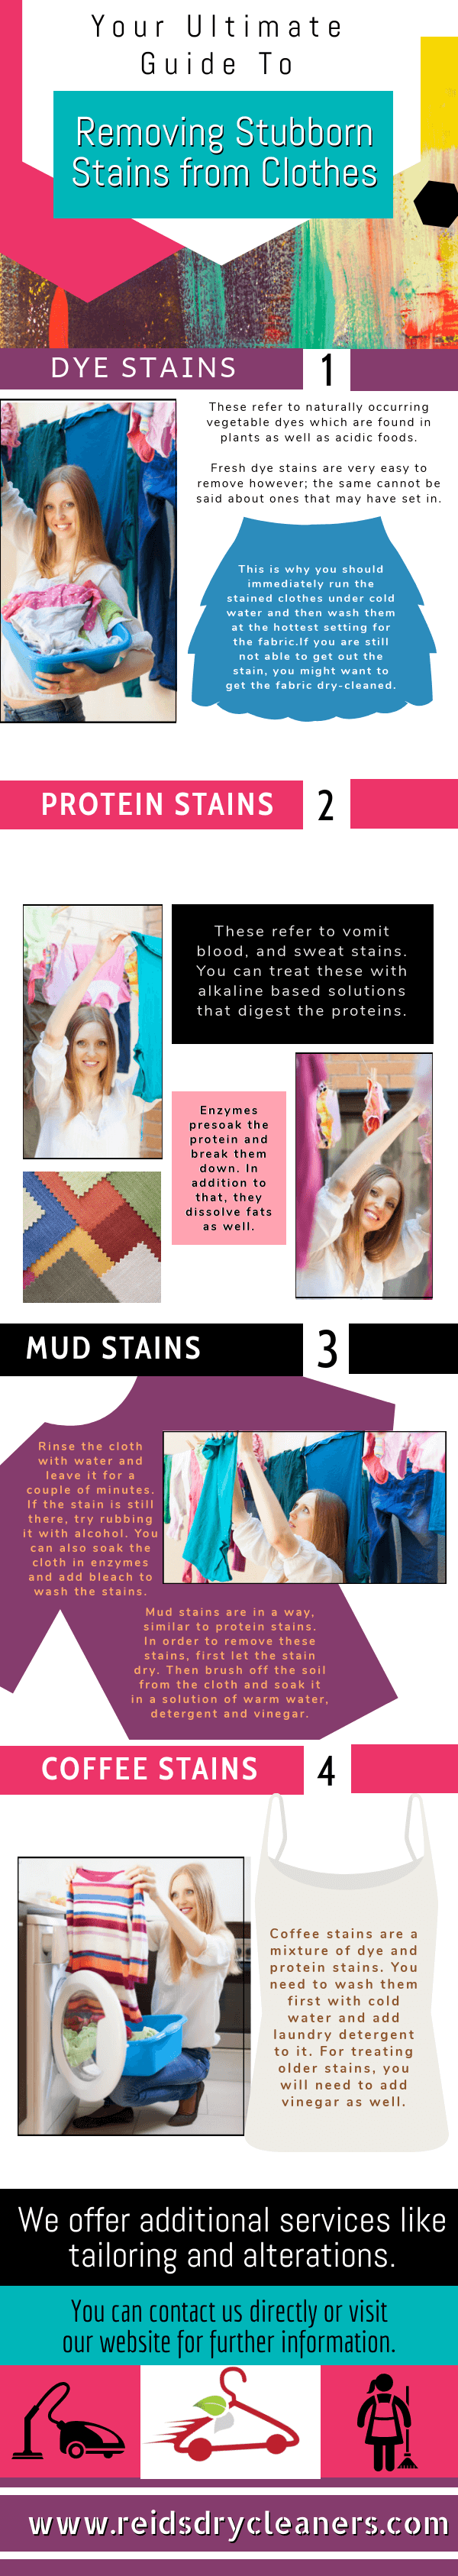 Your Ultimate Guide To Remove Stubborn Stains from Clothes